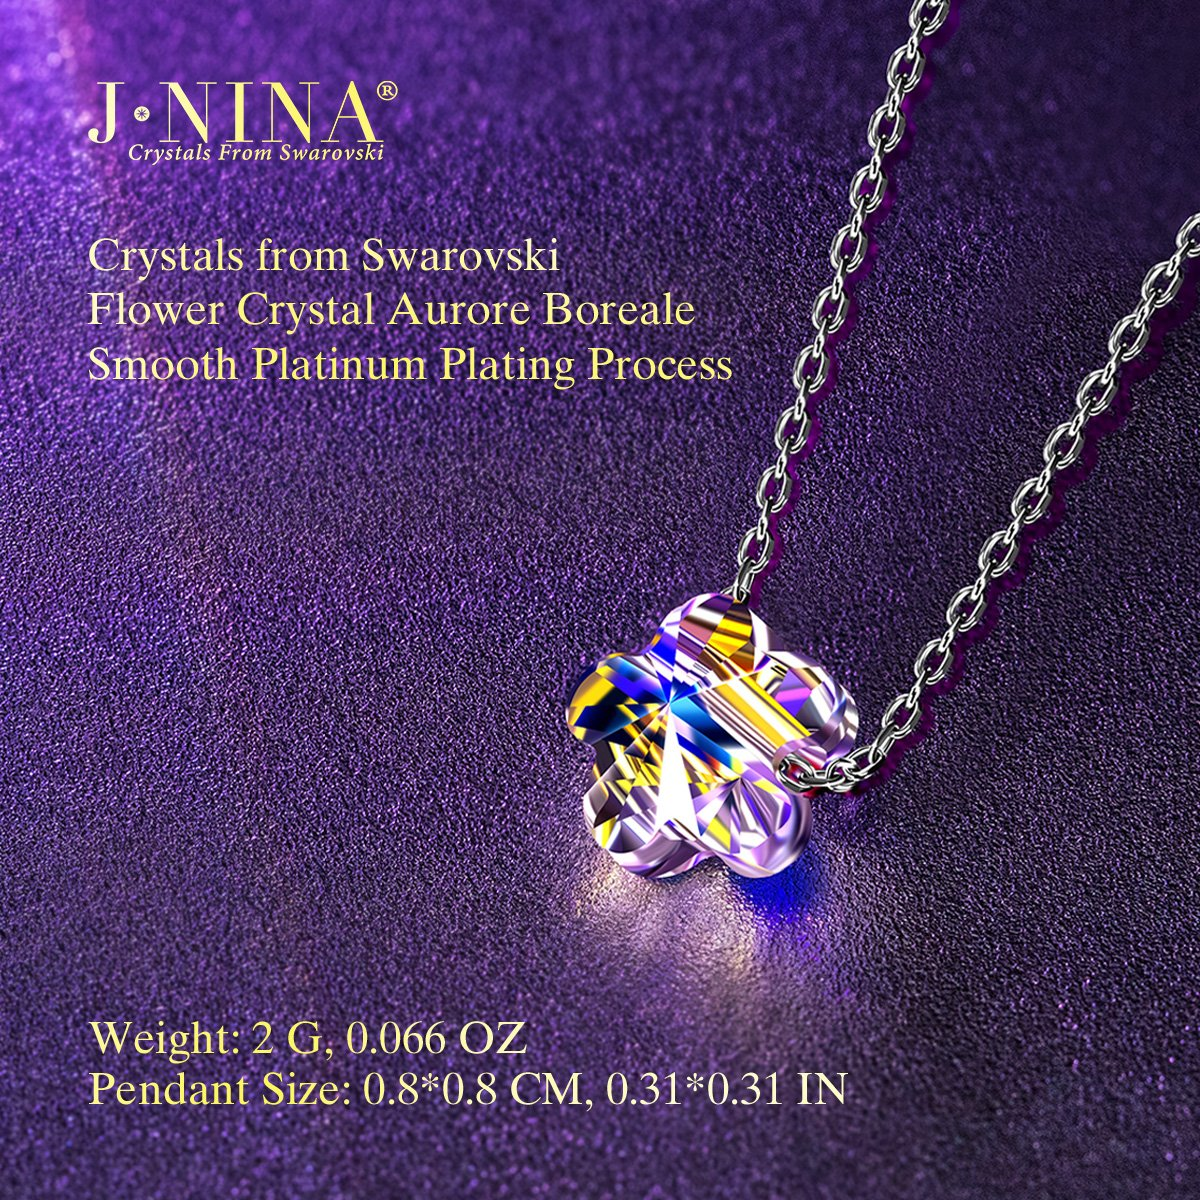 Amazon.com: J.NINA 925 Sterling Silver Rainbow Flower Chain with Aurora  Borealis Crystals from Swarovski, Lucky Pendant Necklace Birthday  Anniversary ...